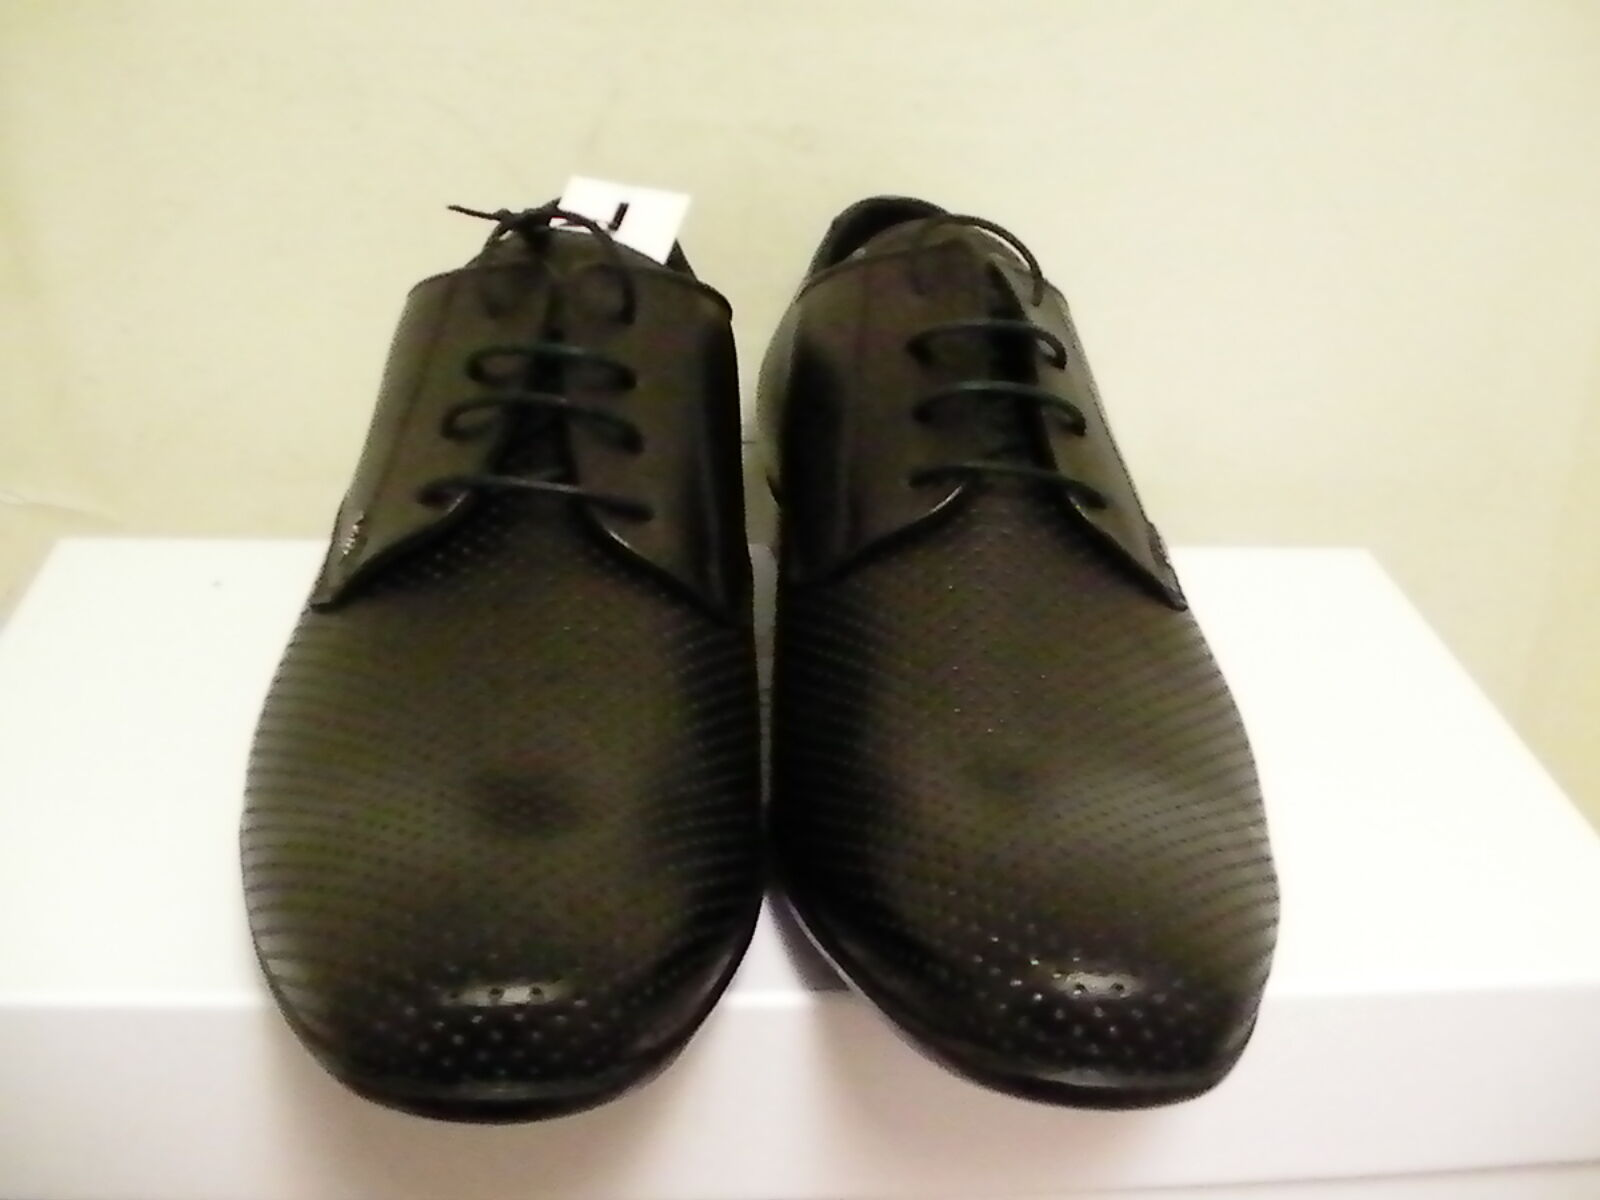 Versace collection casual shoes leather black size 43 euro new with box